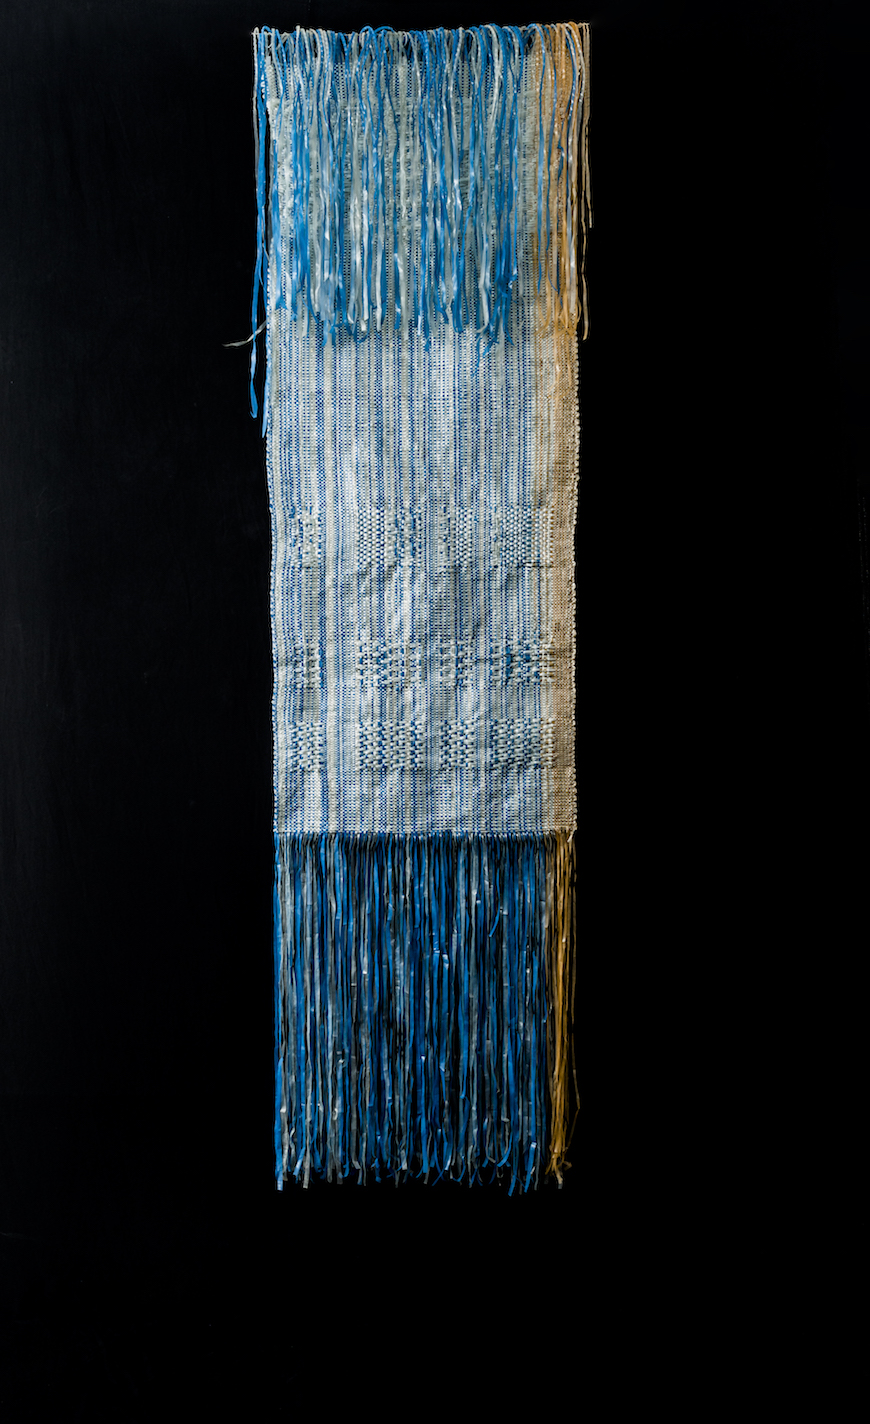 Soukaïna Aziz El Idrissi, 24 Sha Blue/Orange, 2014, Handwoven mixed polymers from discarded plastic waste. Photo: Hassan Ouazzani. Courtesy VOICE gallery